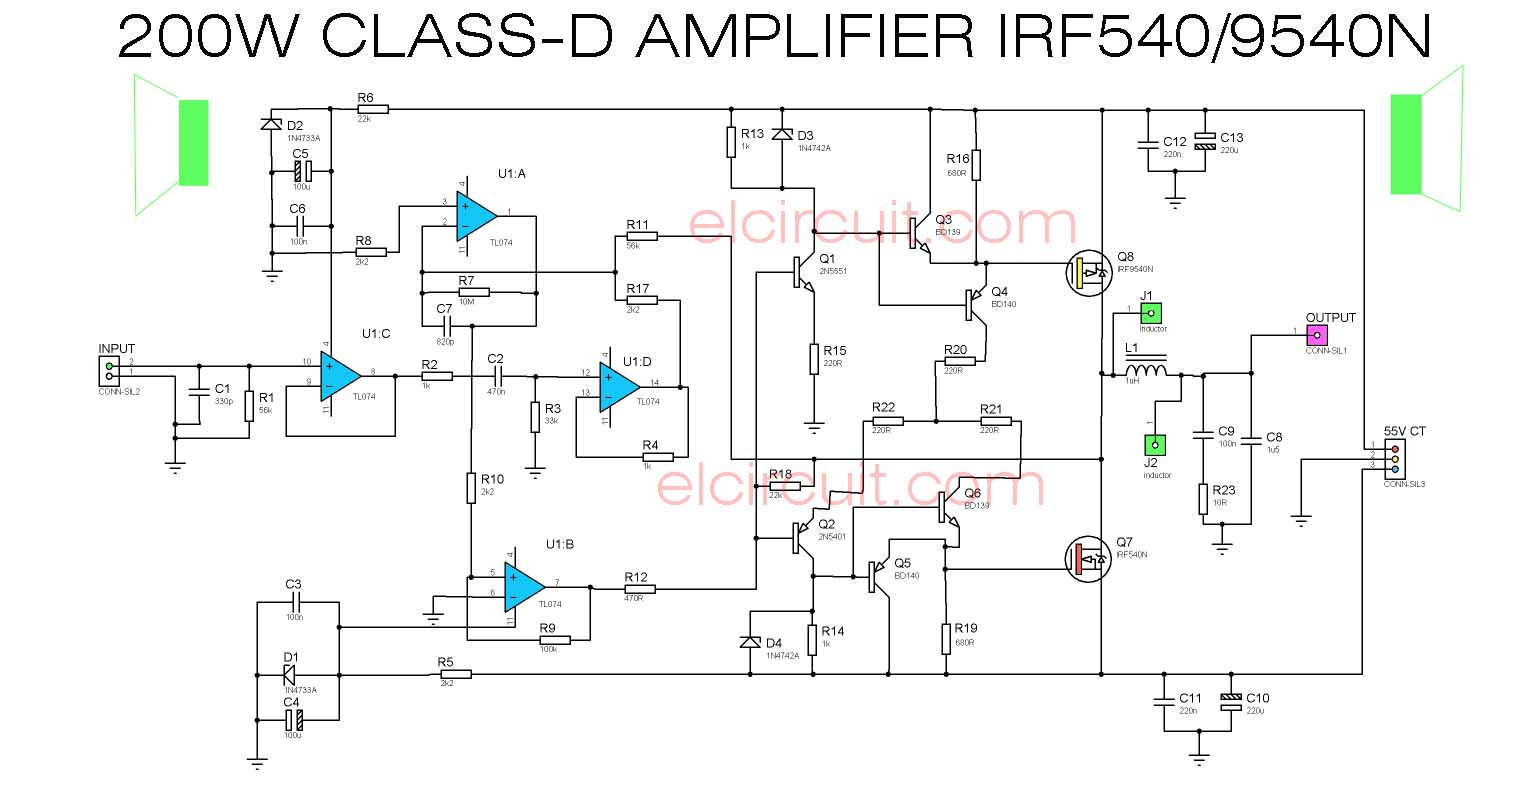 Schematic Diagram Of Class D Amplifier Electronic Diagrams 200w Power Irf540irf9540 Circuit